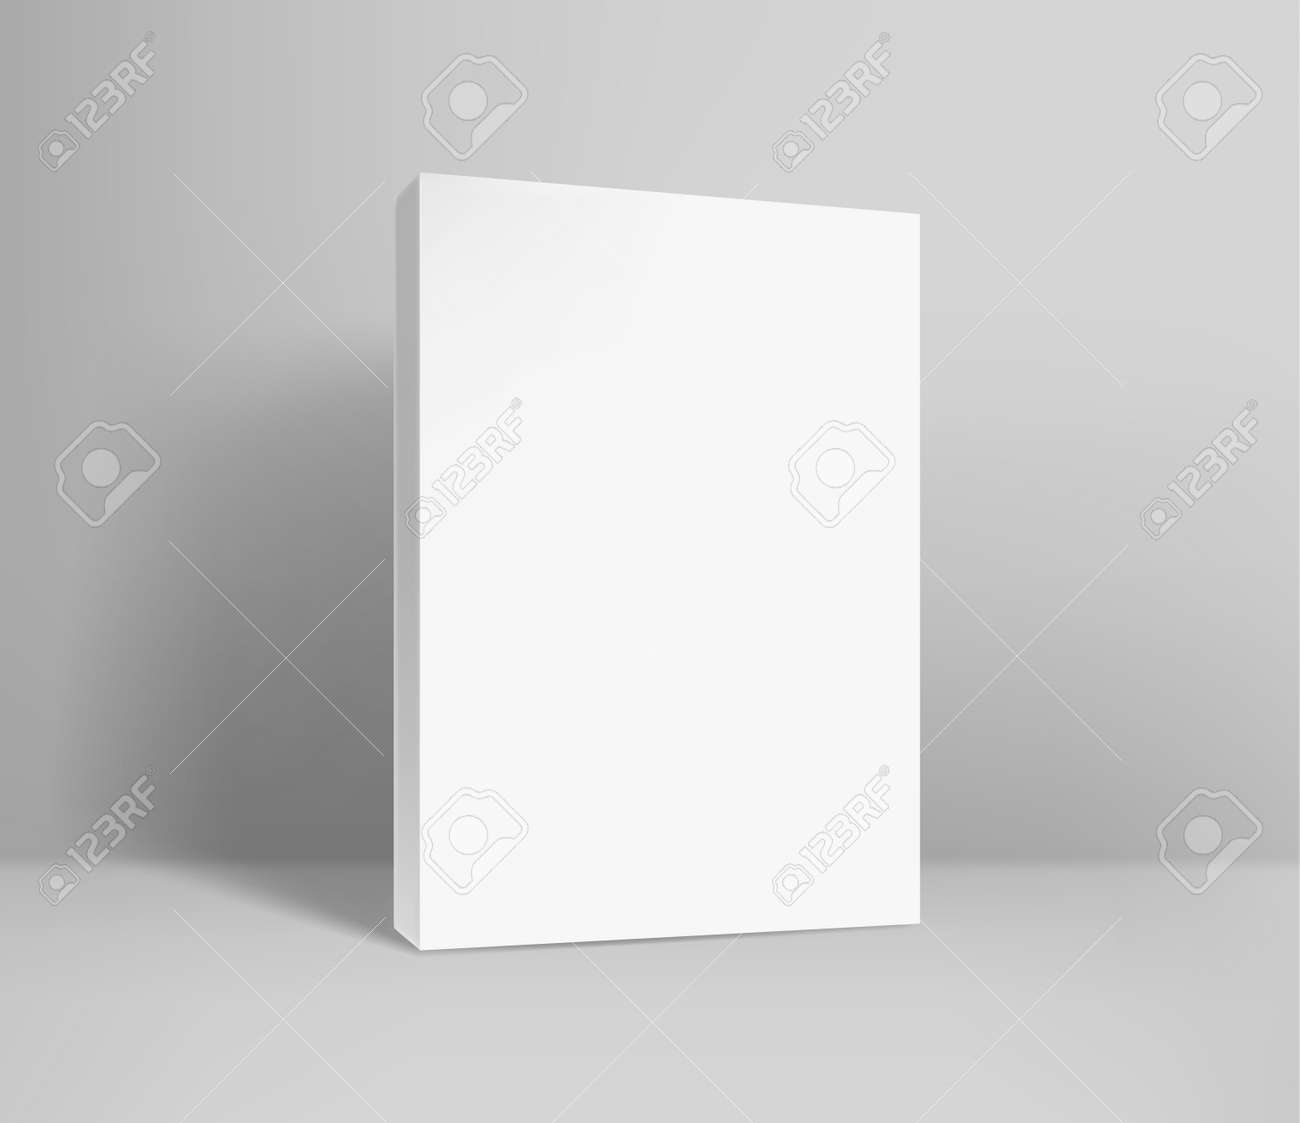 Blank paper book realistic vector illustration. Template for design. Vector mockup - 166366219